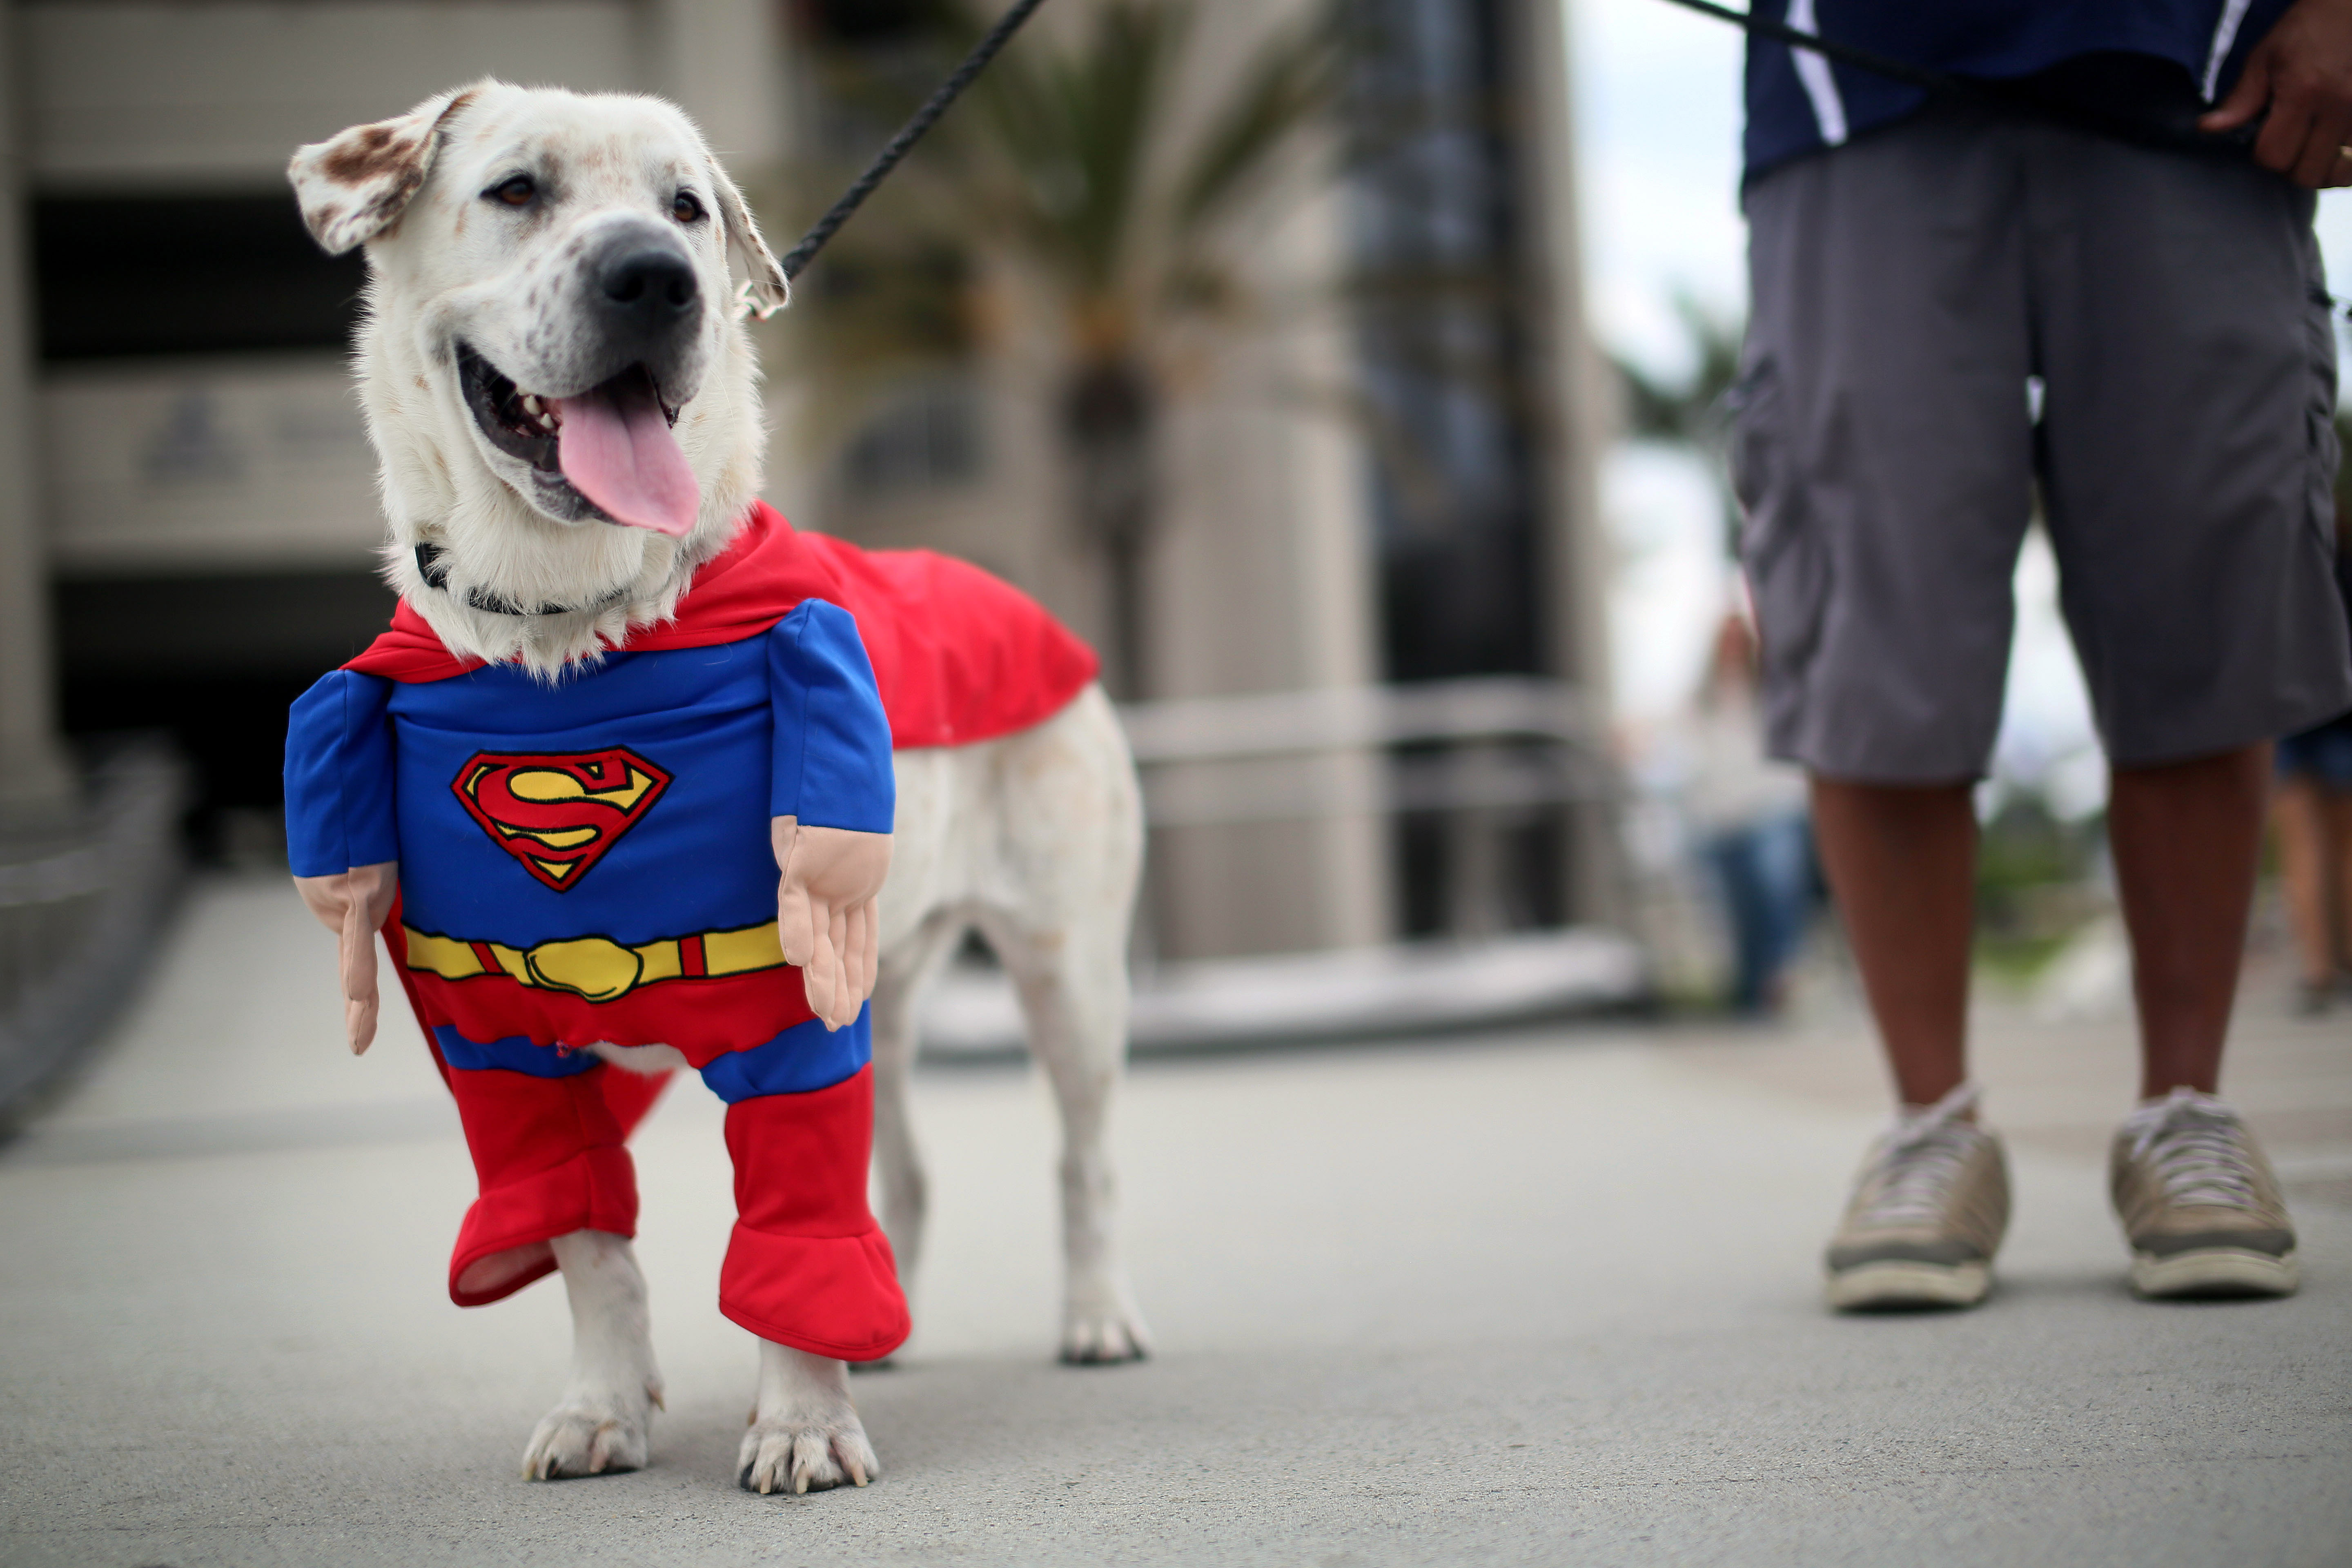 Beckham the dog sports a Superman costume during Comic Con on July 19, 2013 in San Diego.